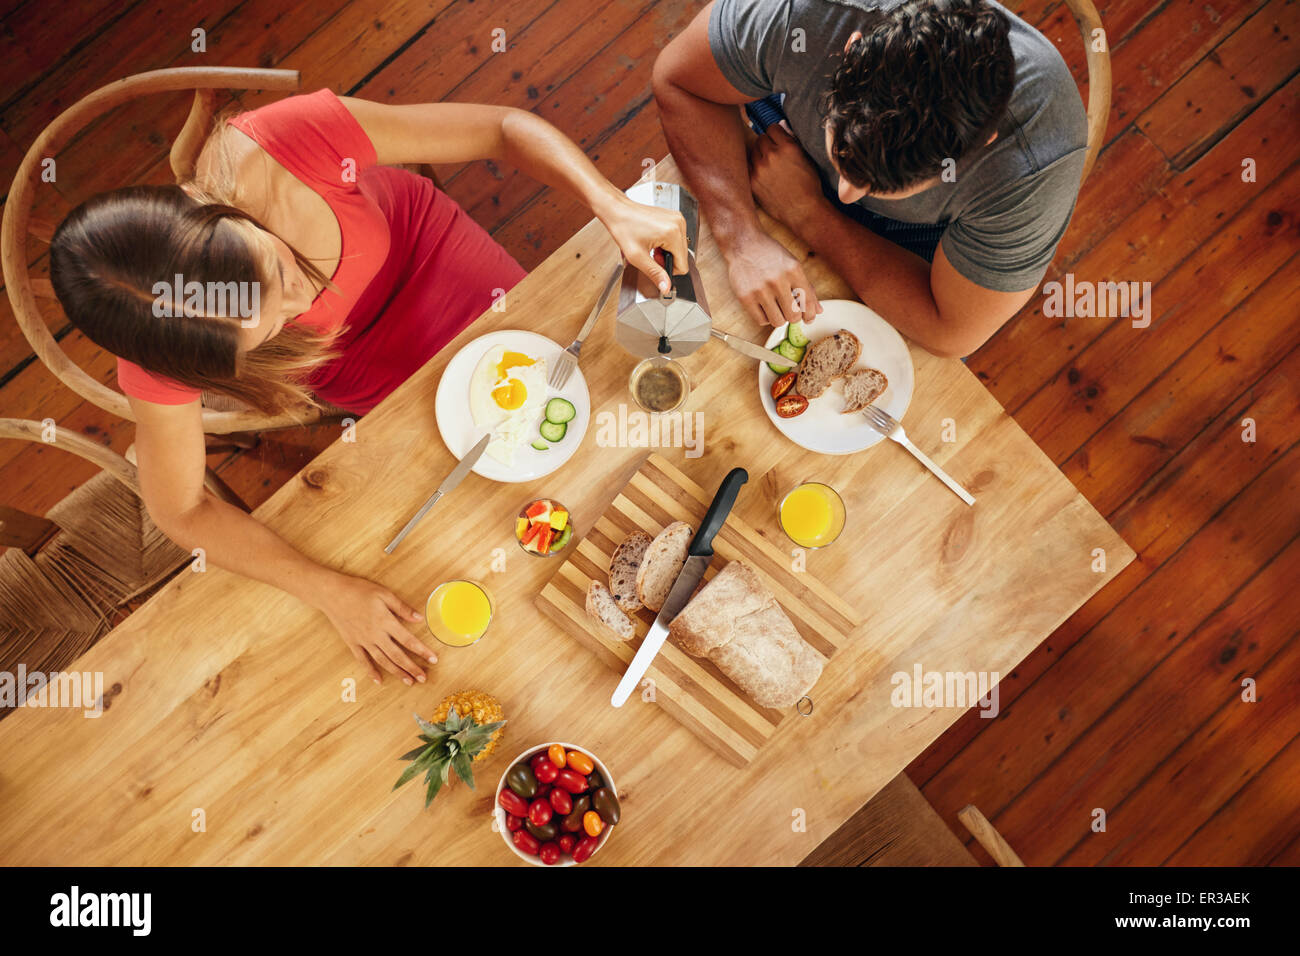 Overhead view of couple having morning breakfast in kitchen with woman serving coffee to man. - Stock Image